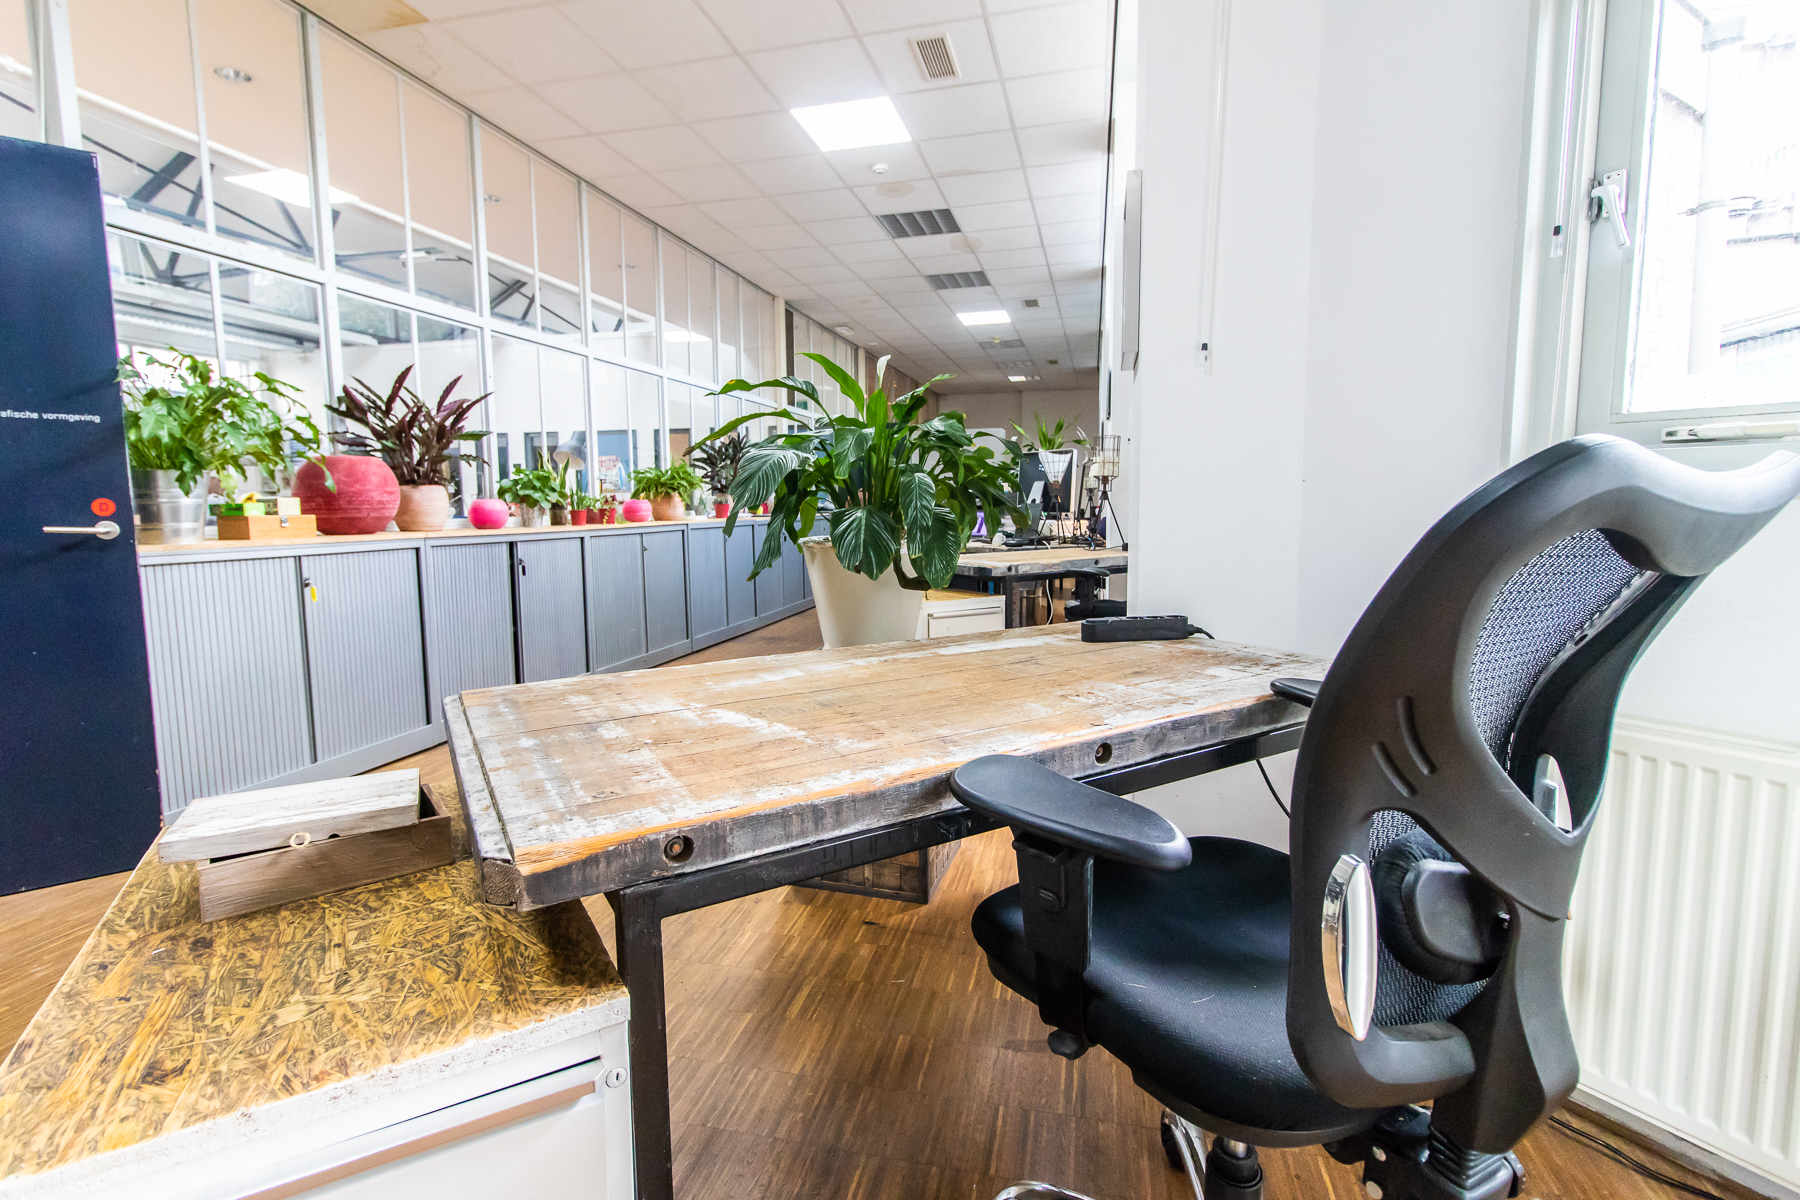 Rent office space Oudeschans 21, Amsterdam (13)